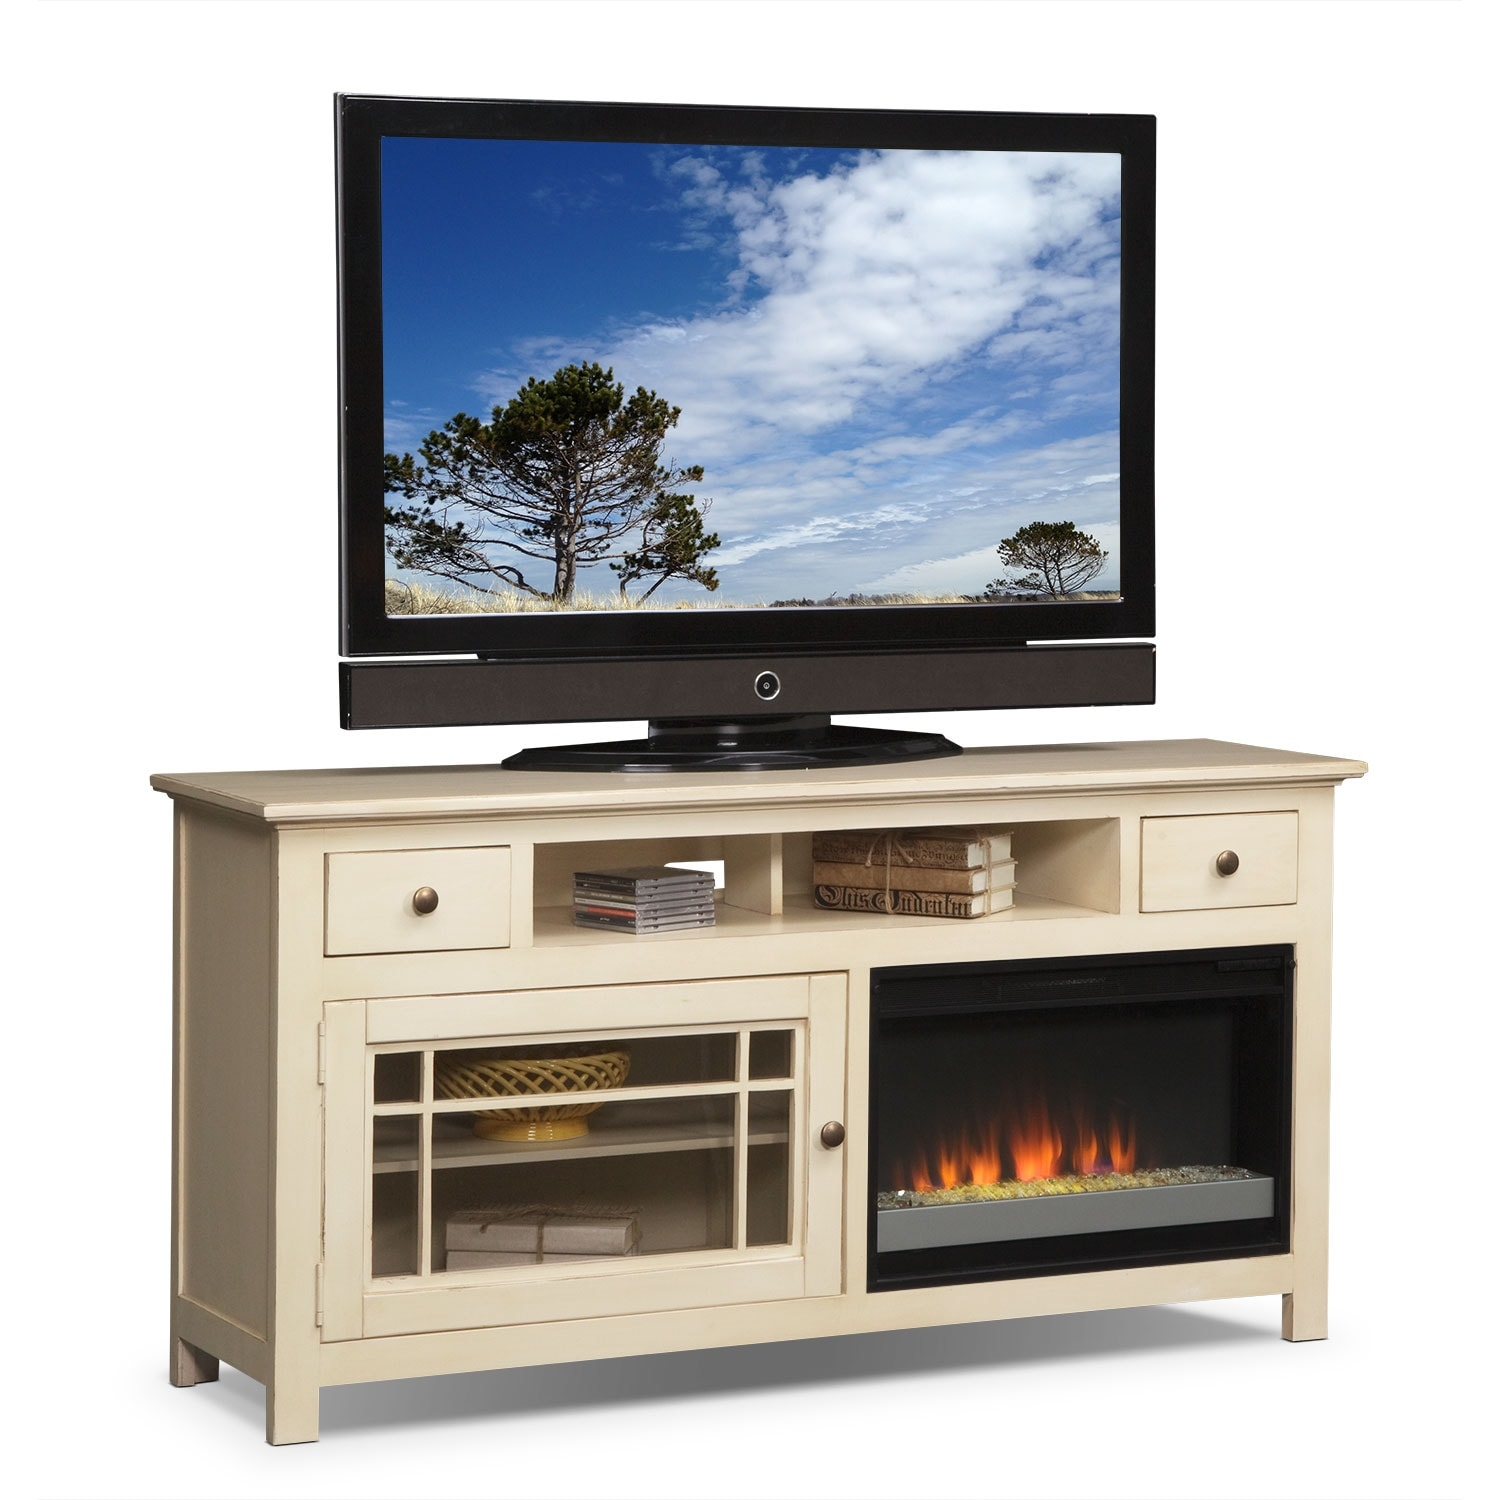 Merrick White 64 Fireplace Tv Stand With Contemporary Insert Value City Furniture